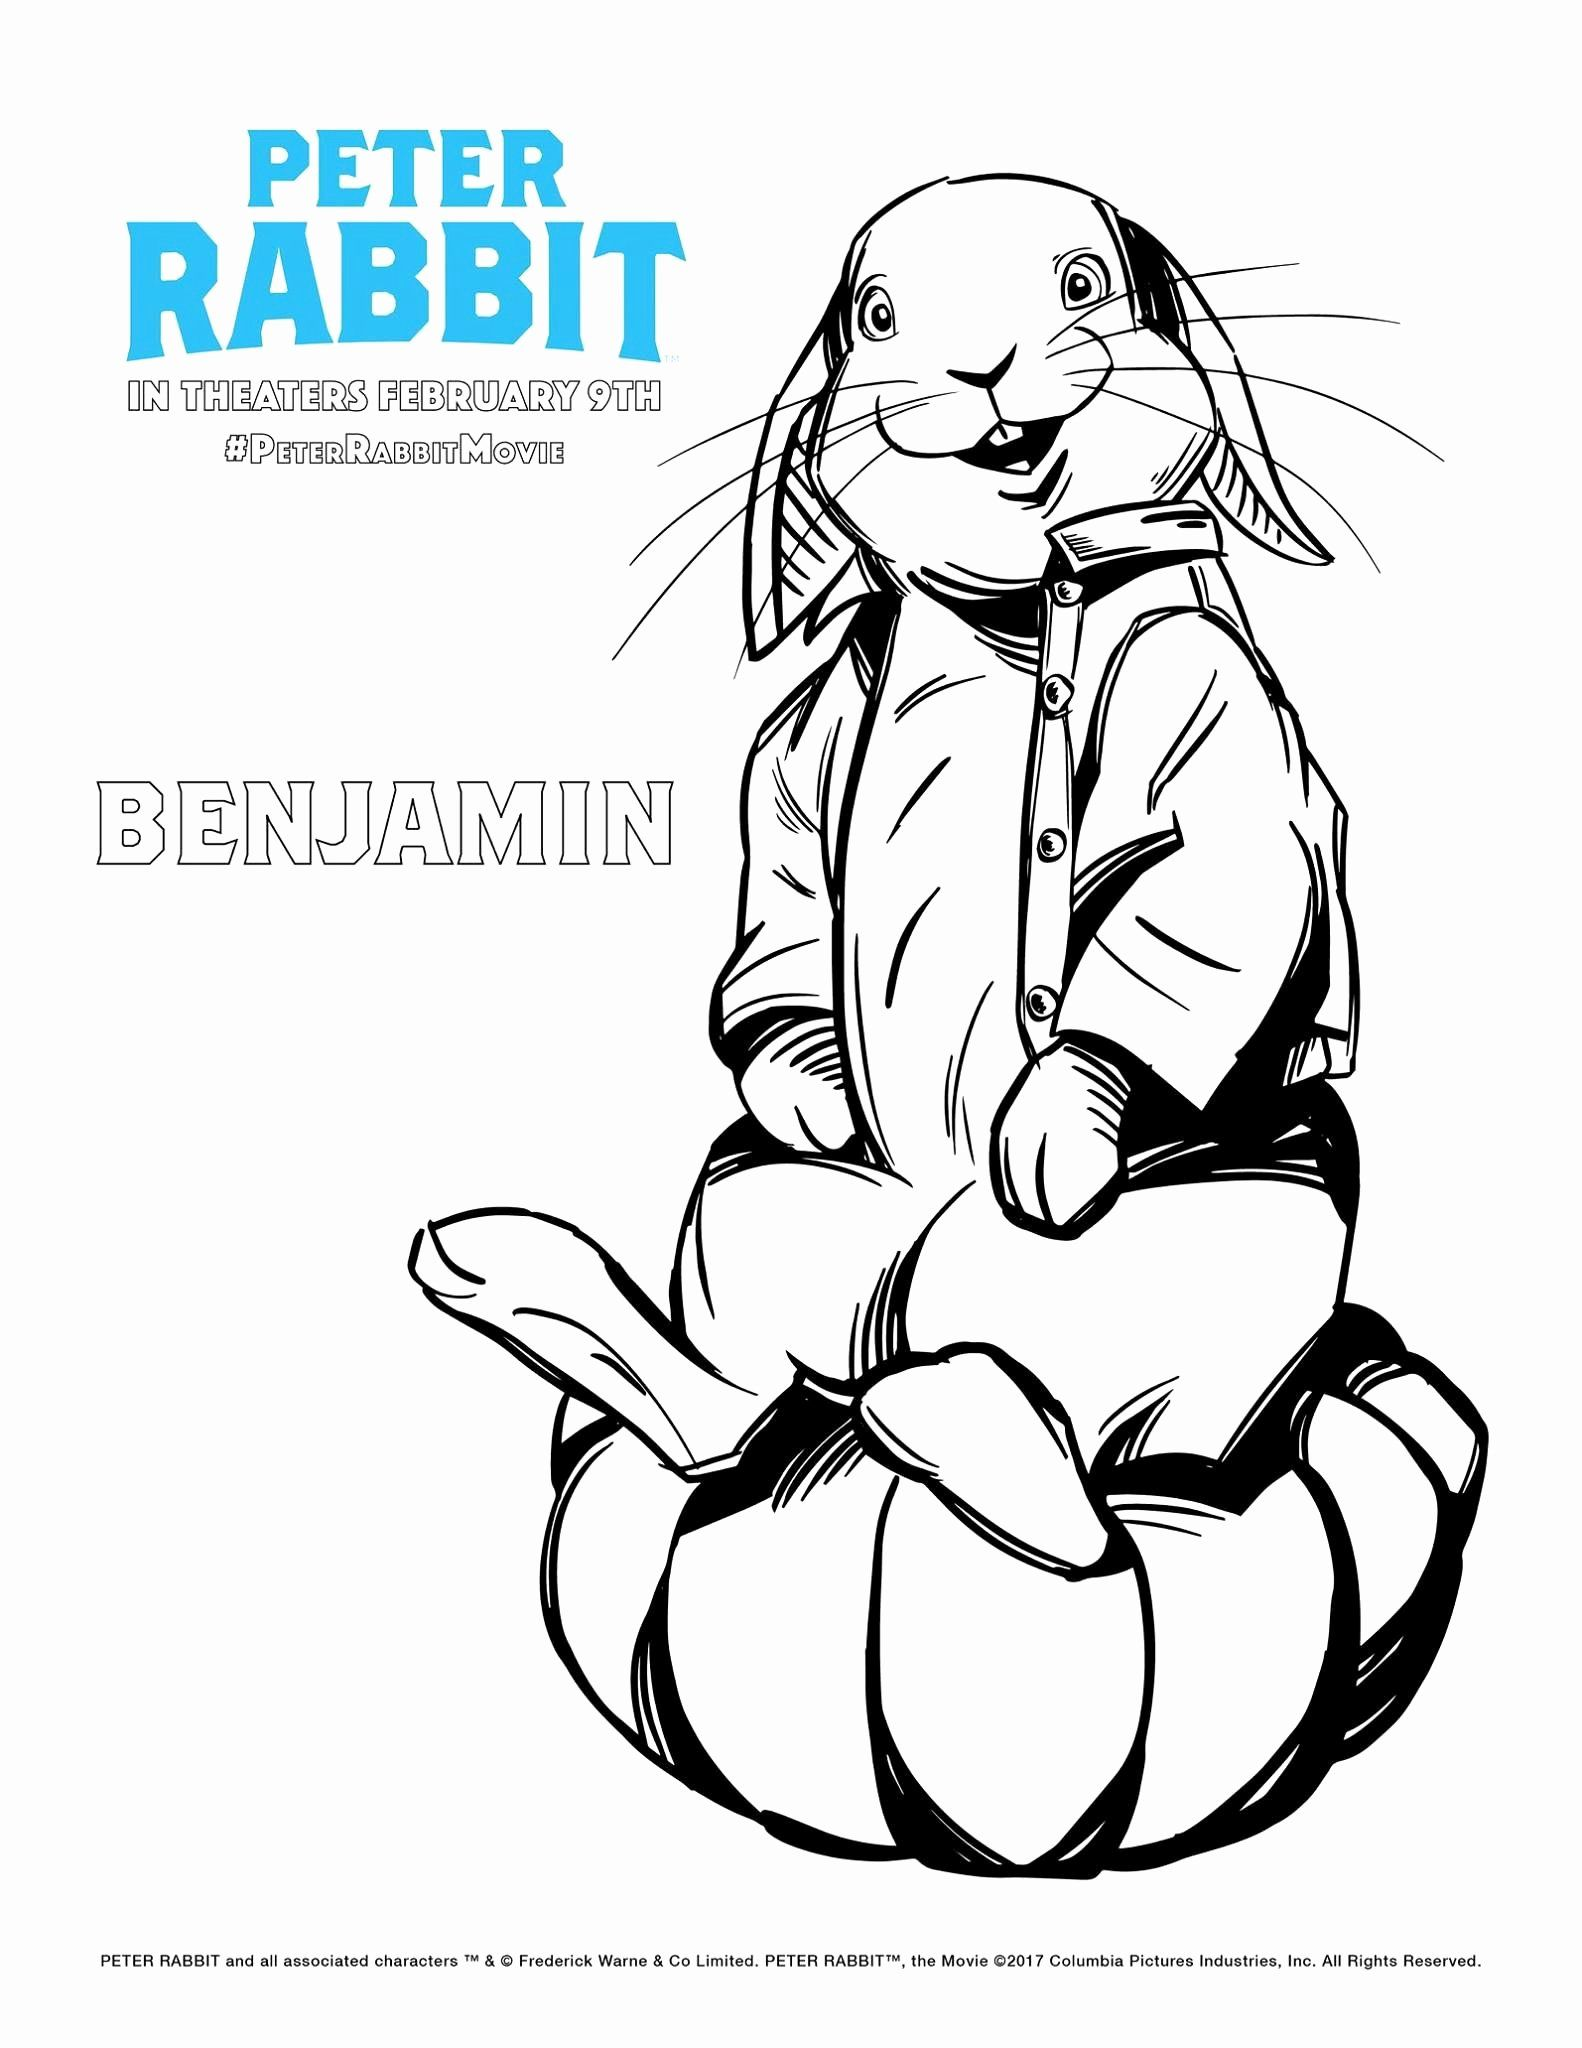 Peter Rabbit Coloring Page Best Of 34 Most Mean Creation Coloring Pages For Sunday School Peter Rabbit Movie Peter Rabbit Coloring Pages